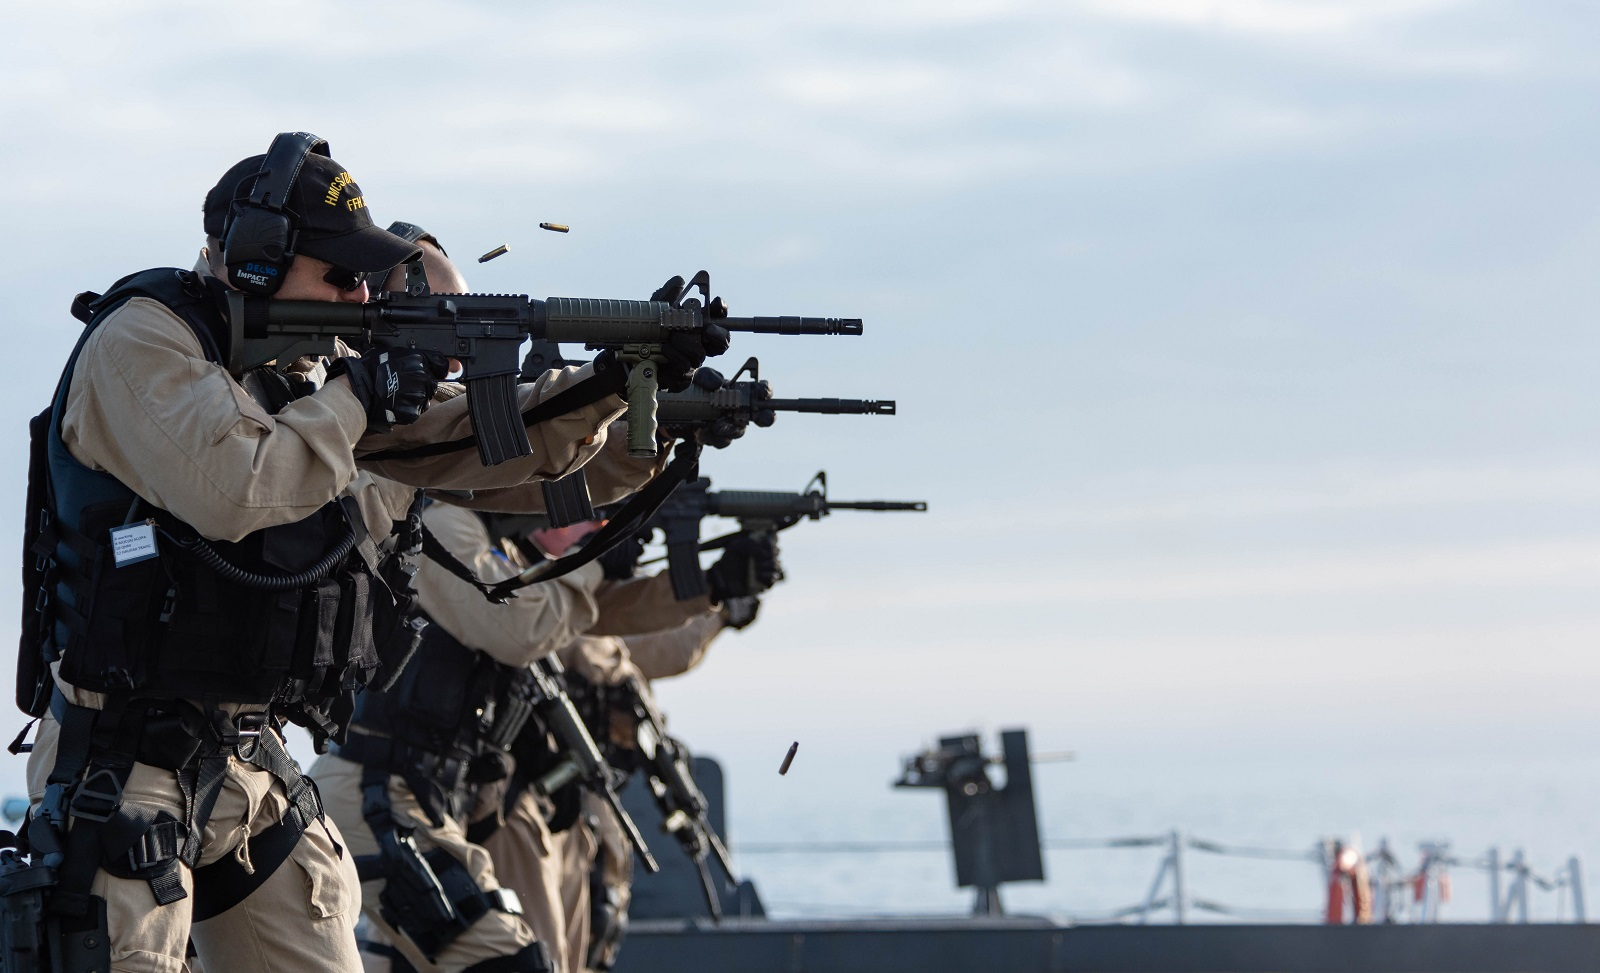 Members of HMCS Toronto's Naval Boarding Party fire the C8A2 assault rifle during weapons training on the flight deck on April 8, 2019.